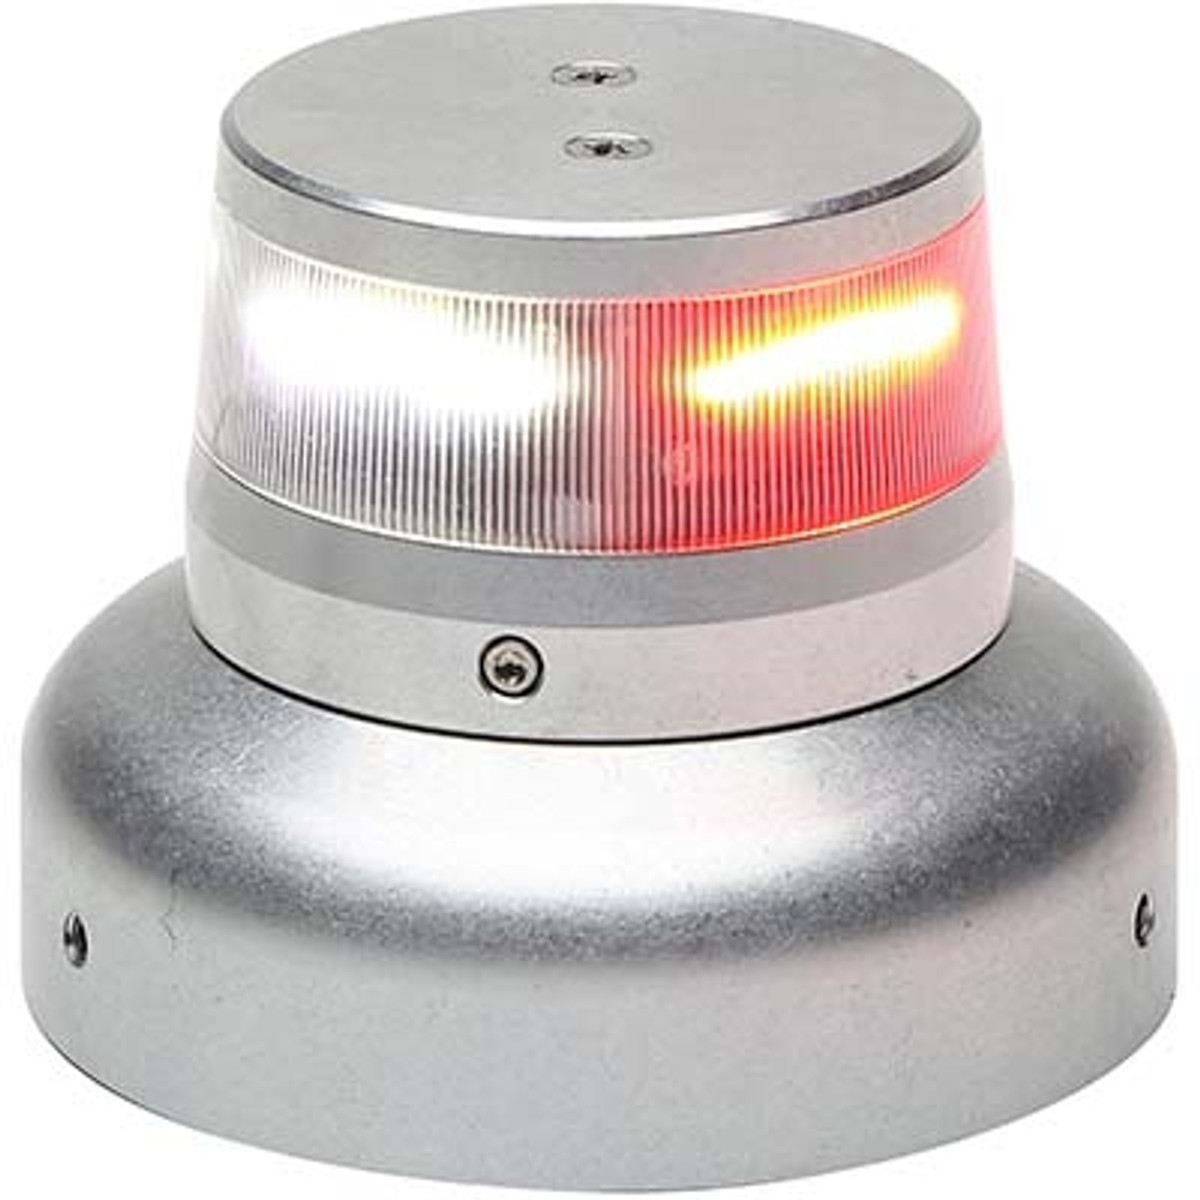 Whelen ORION 360 Beacon Part 01-0772010-72, Model OR36S1W